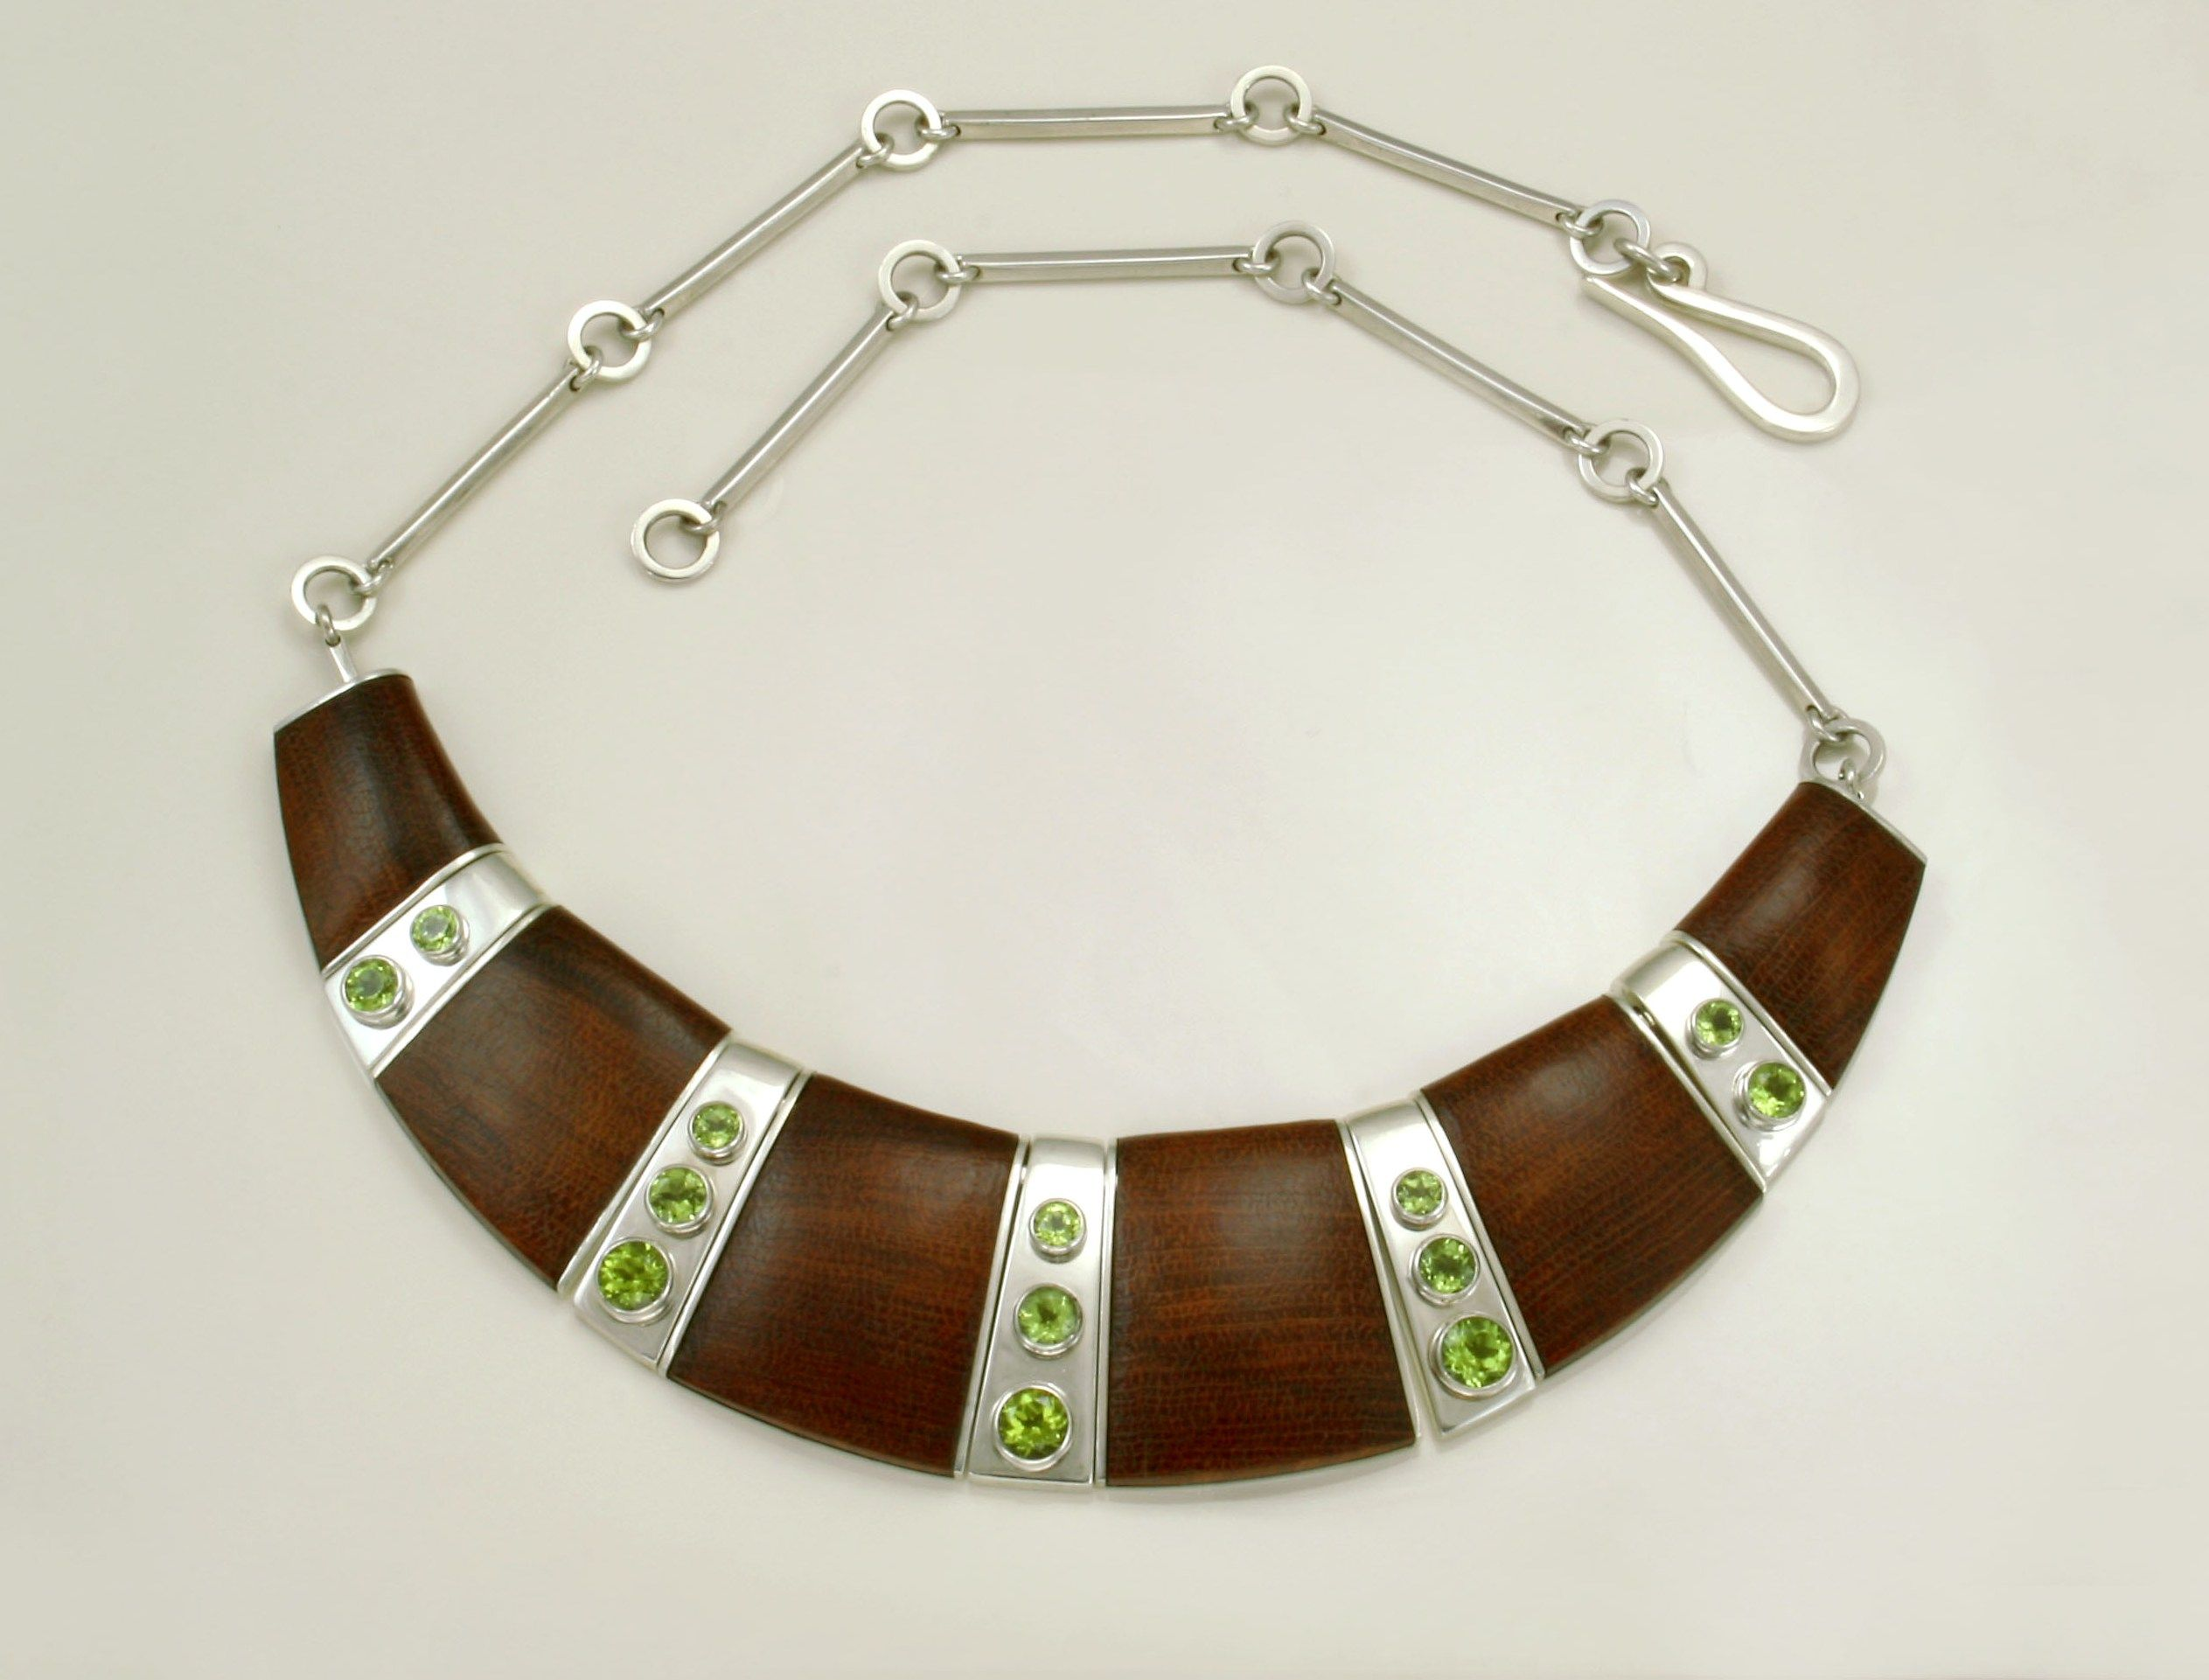 Necklace made of NZ native matai wood with peridots set in sterling silver.